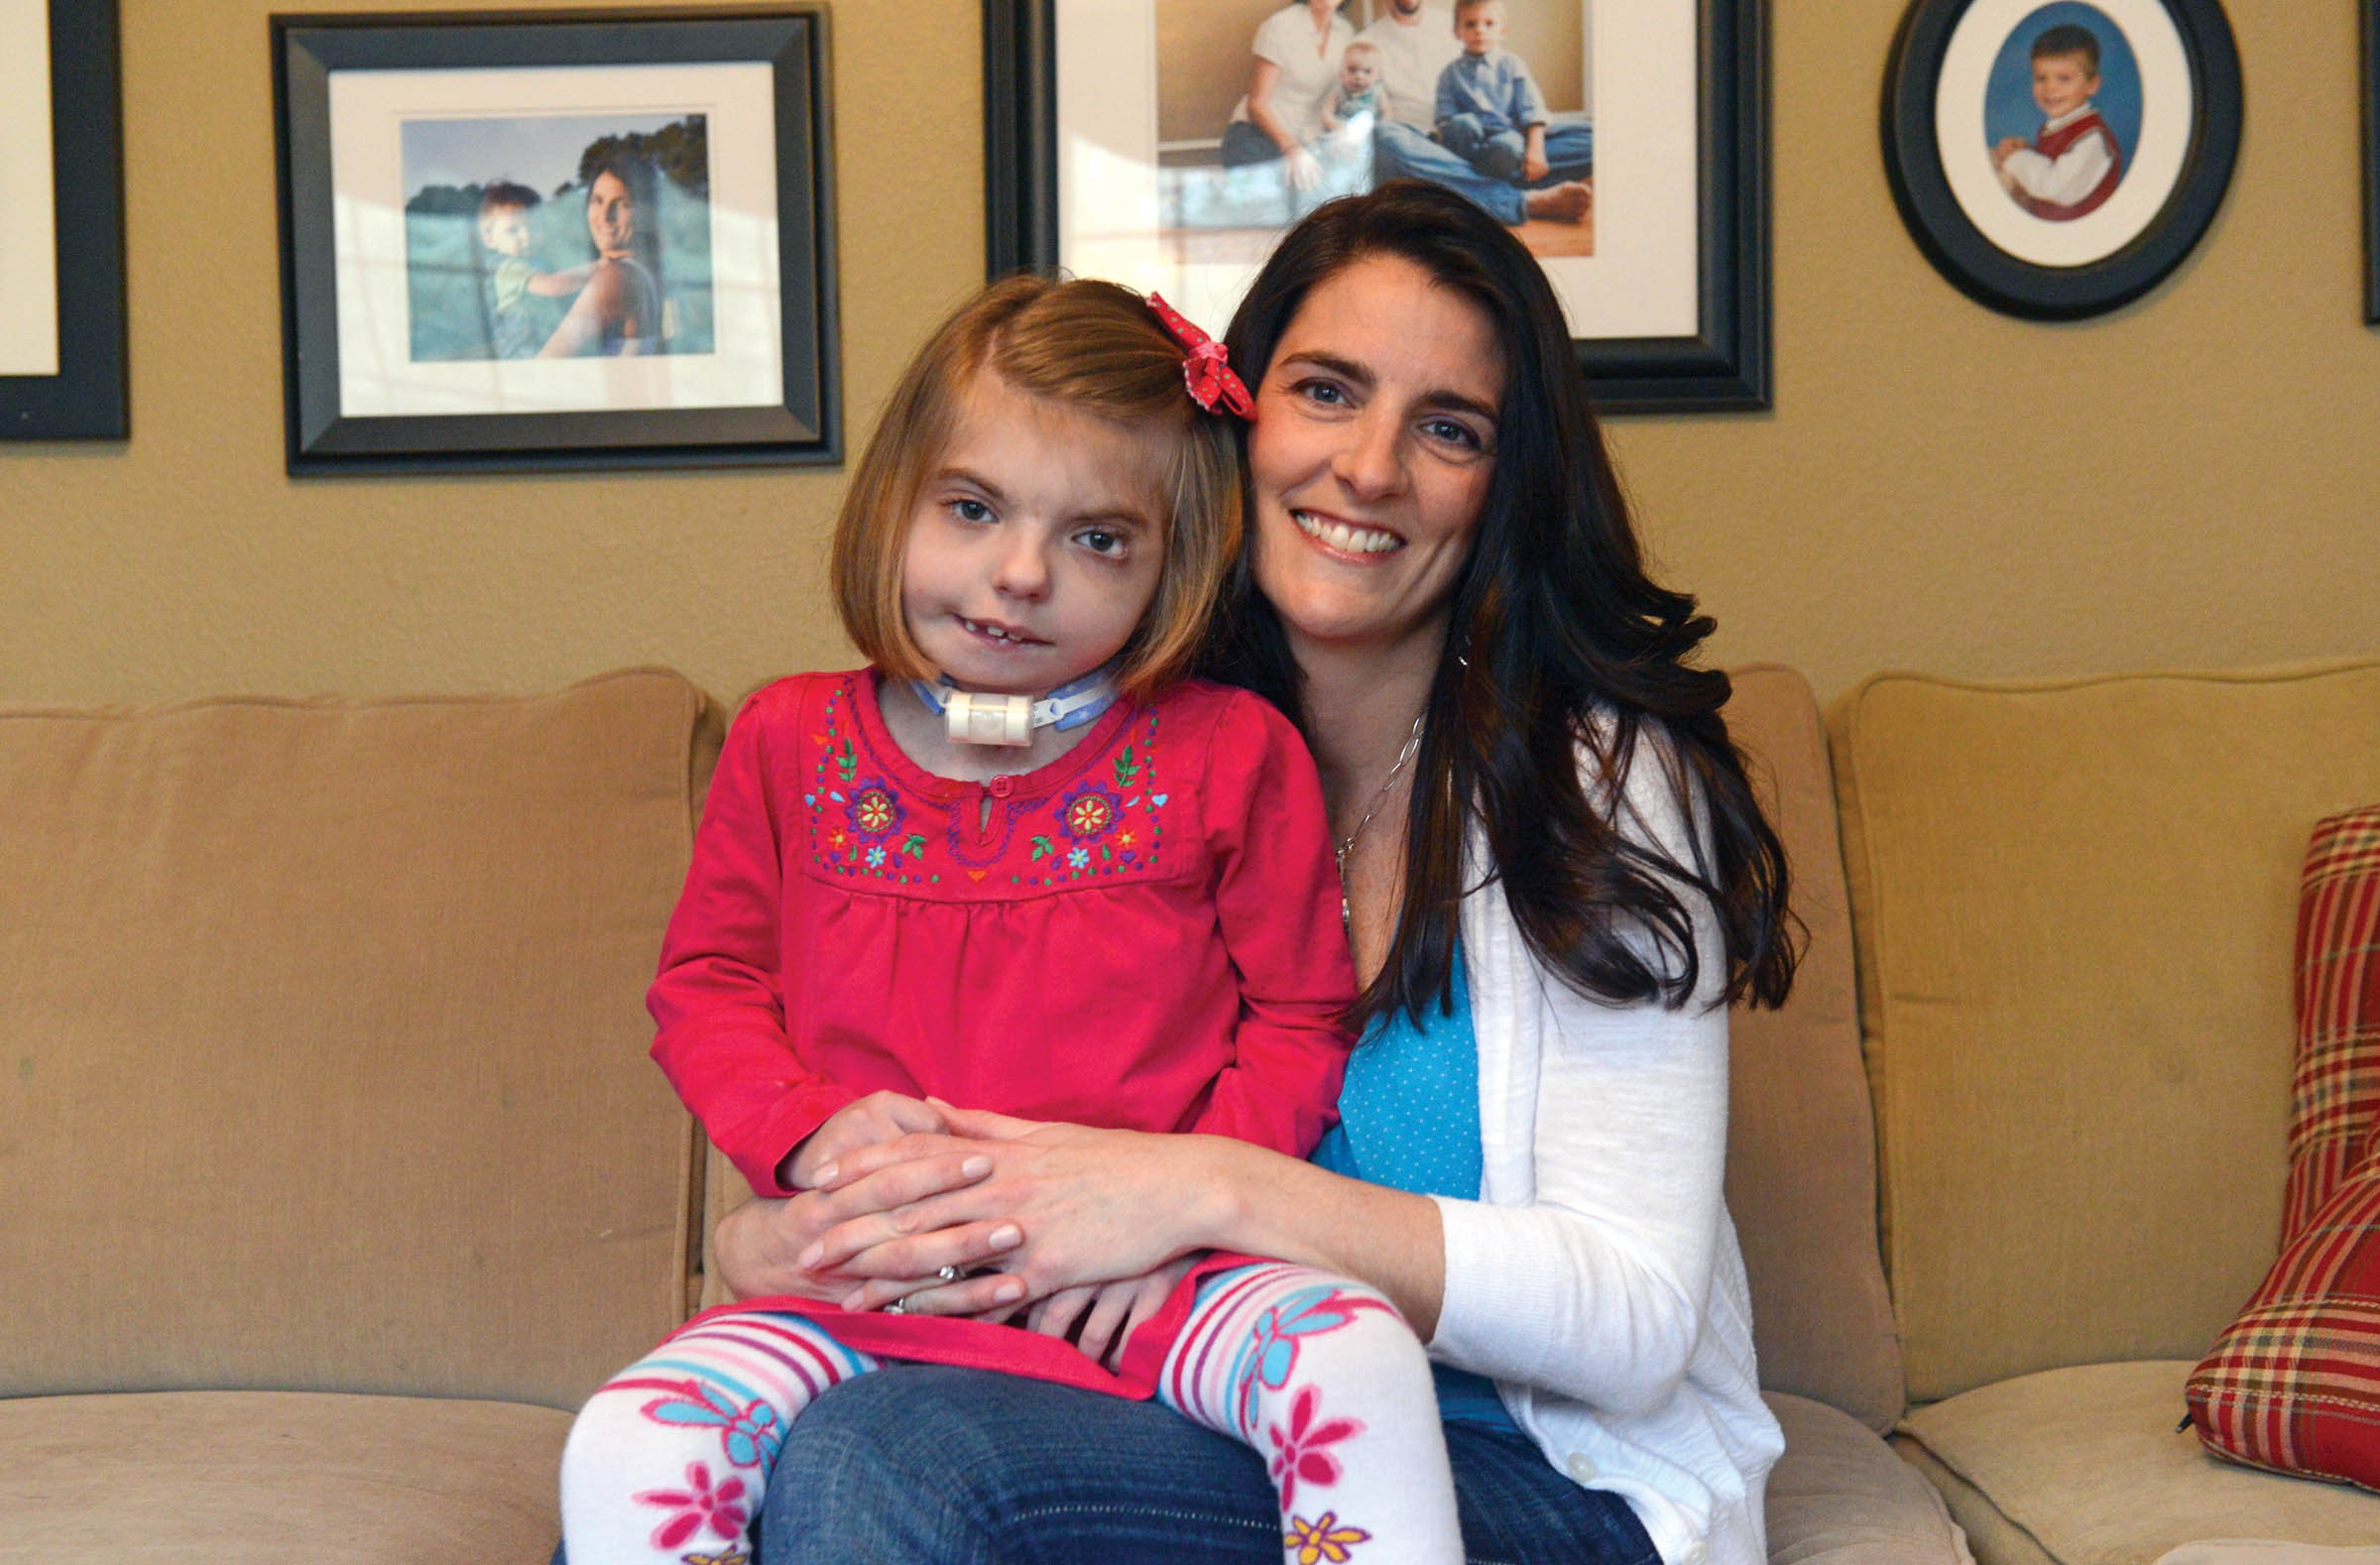 Christy Holton often must take her daughter, Harlie, who suffers from cranio-facial syndrome, heart defects and other serious ailments, out of Richmond to get the care she needs. - SCOTT ELMQUIST